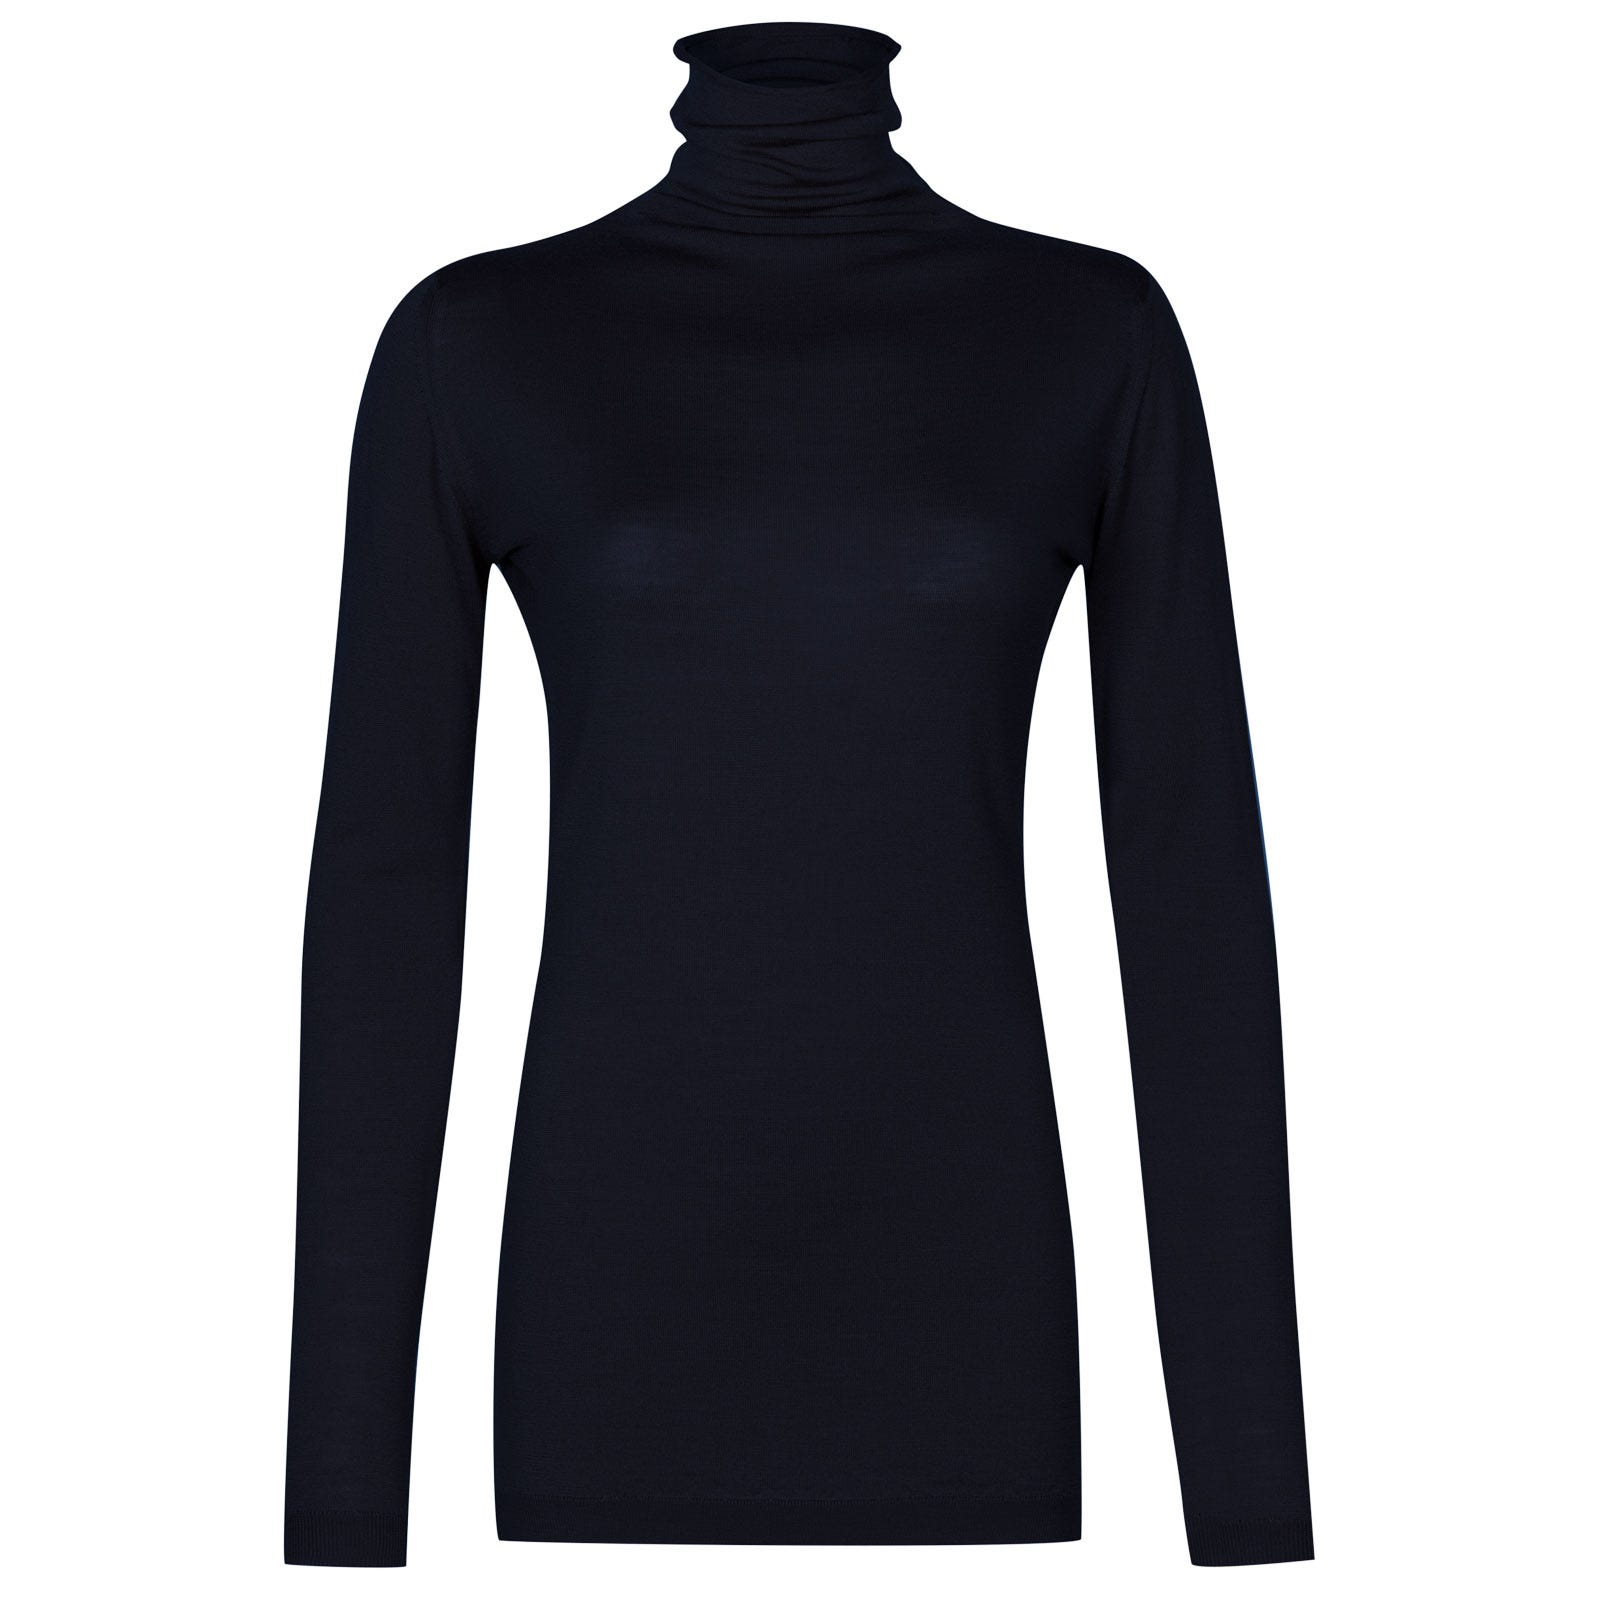 John Smedley westley Merino Wool Sweater in Midnight-XL